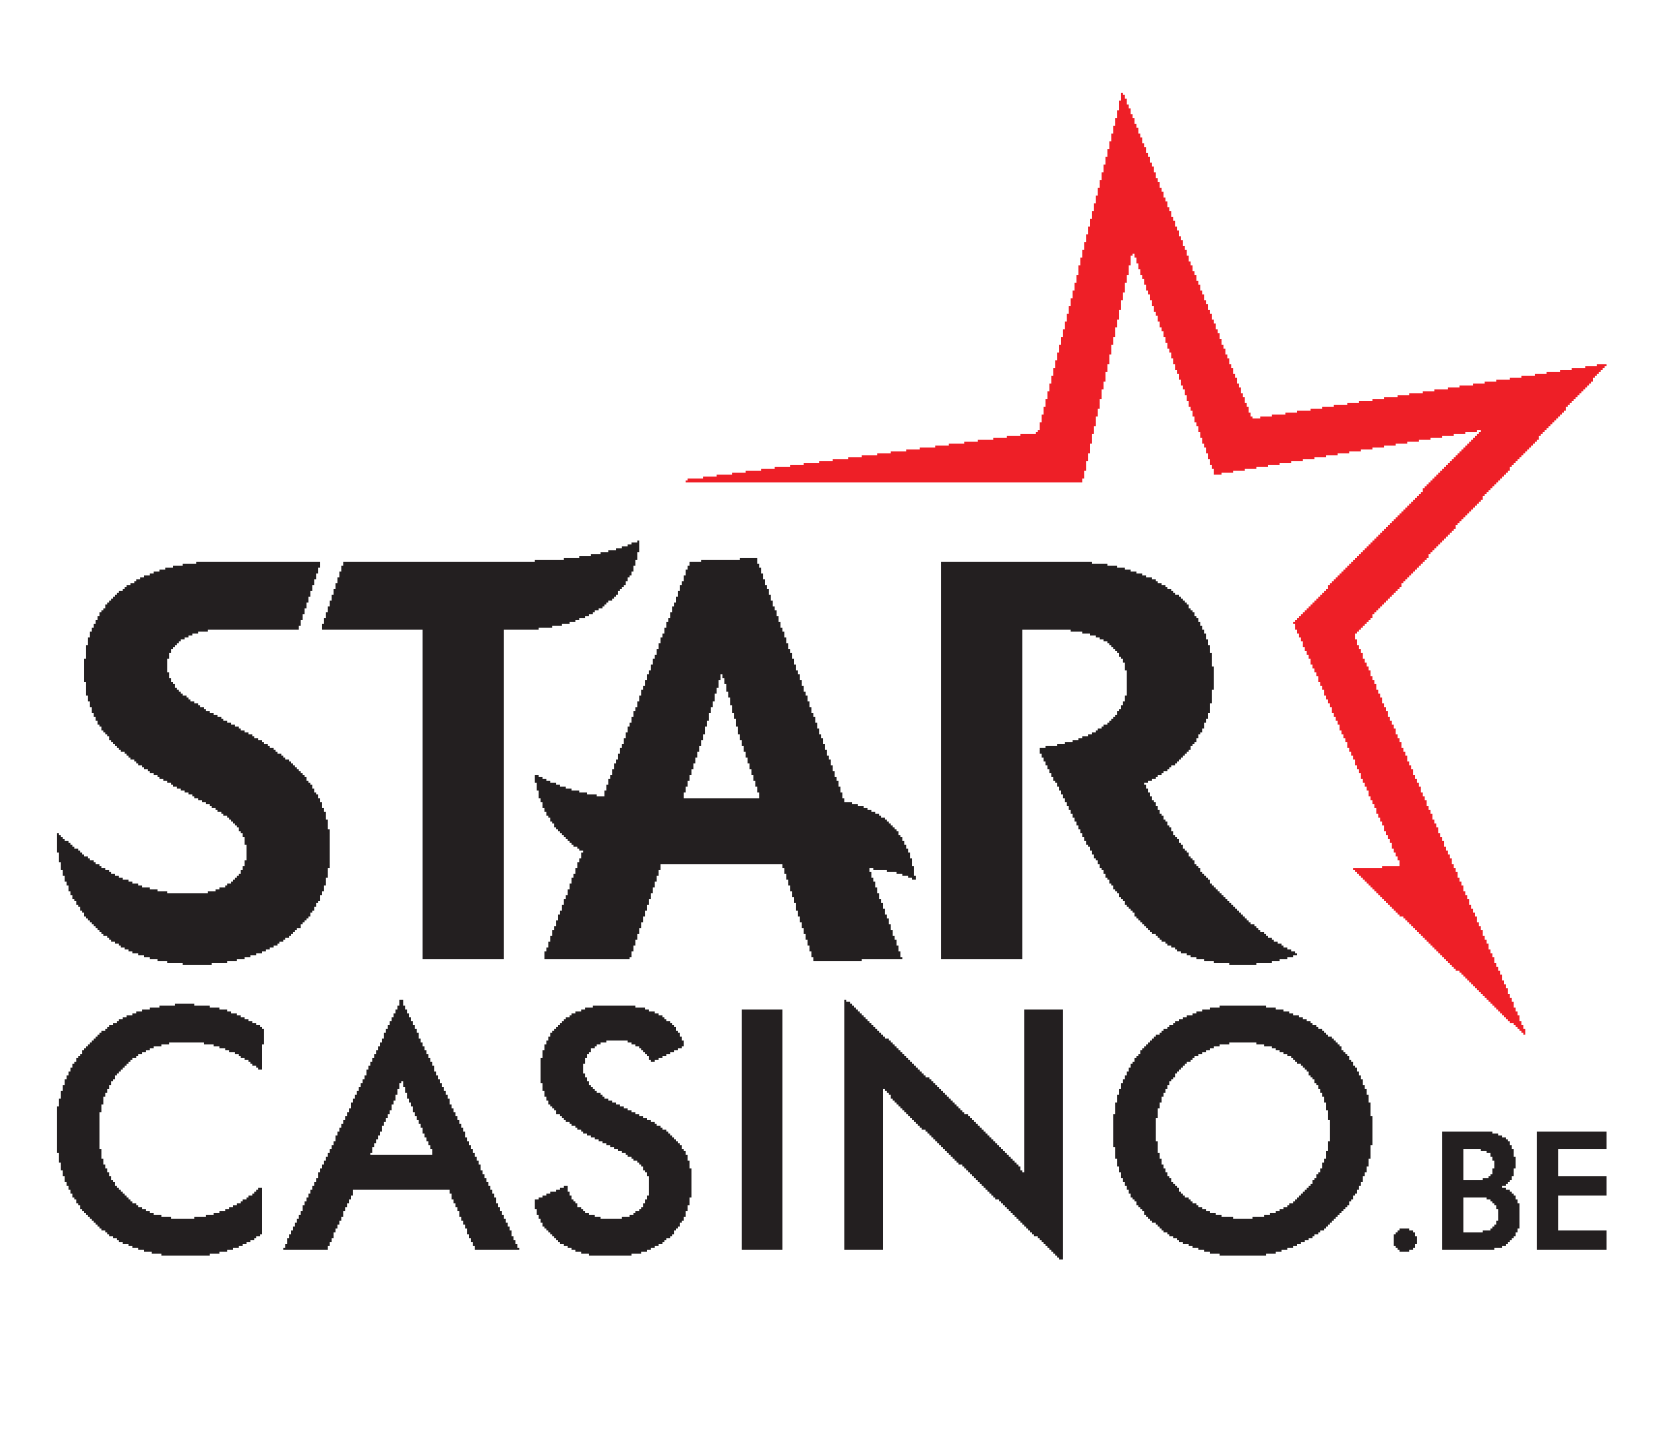 The Star Casino Logo